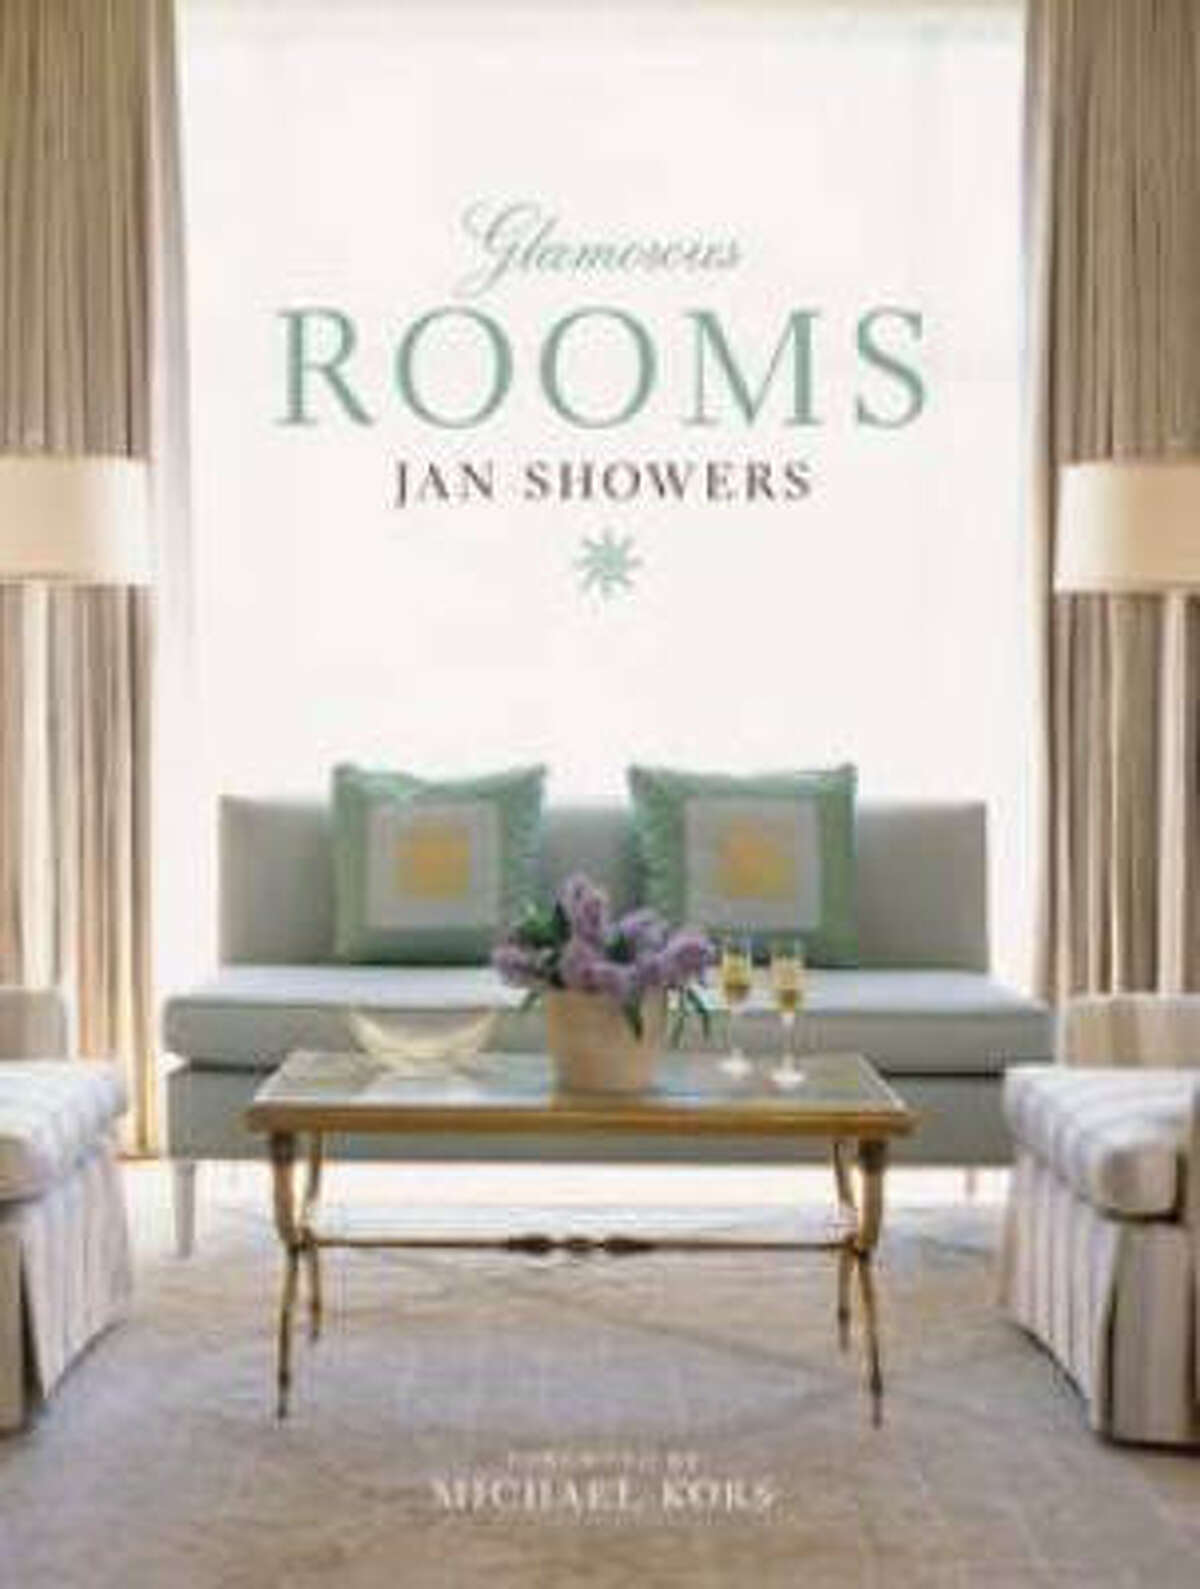 Glamorous Rooms by Jan Showers